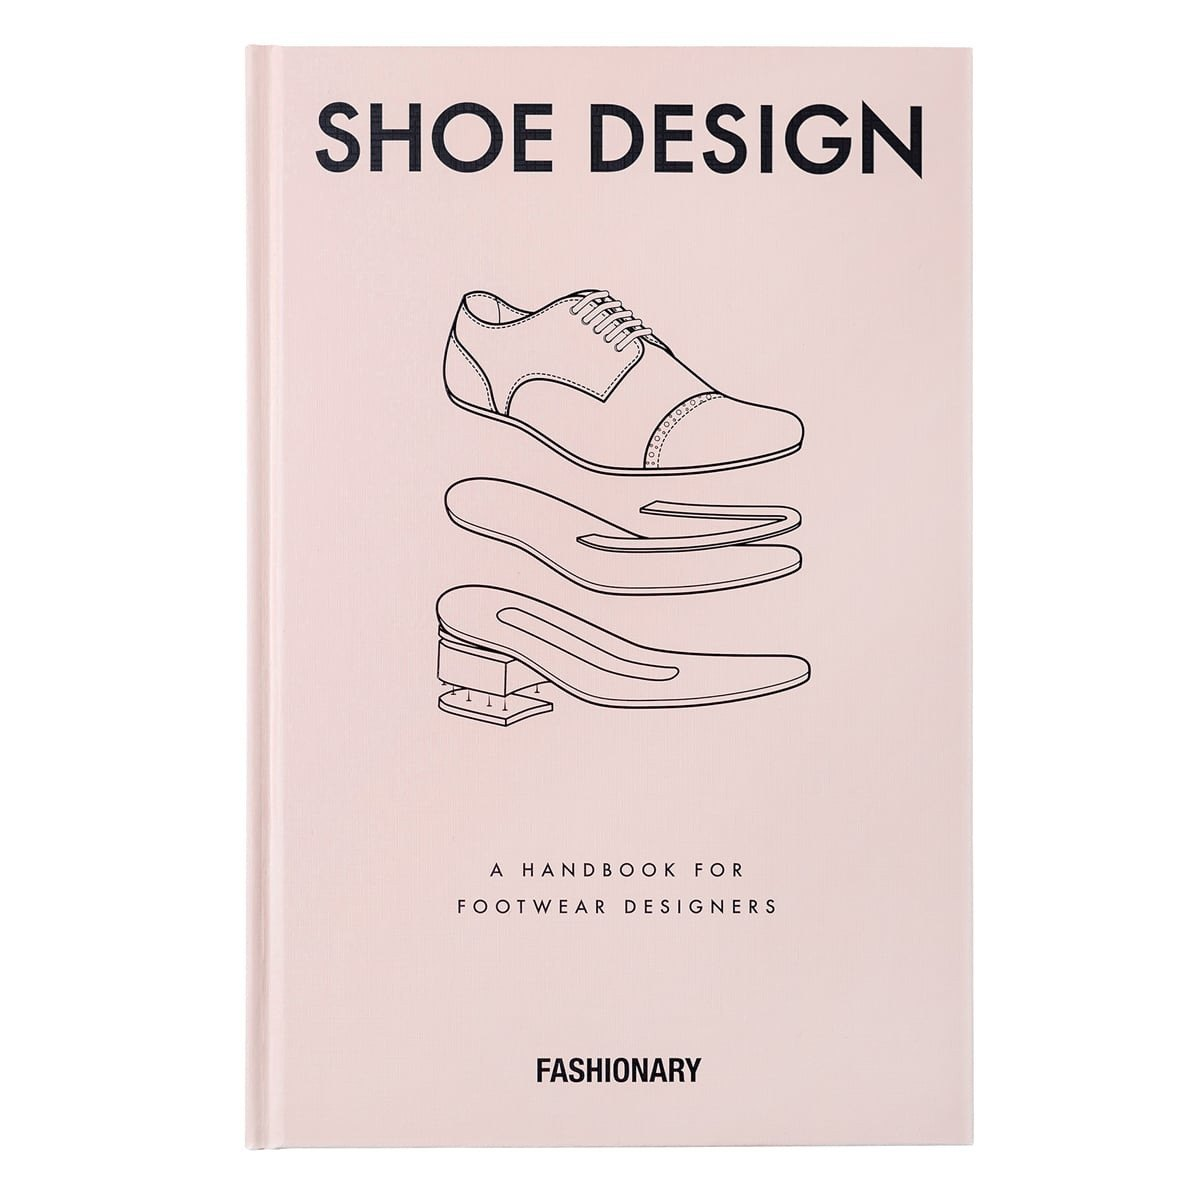 shoe design Complete your look with designer shoes by christian louboutin, manolo blahnik, gianvito rossi, aquazzura, saint laurent and more at barneyscom.